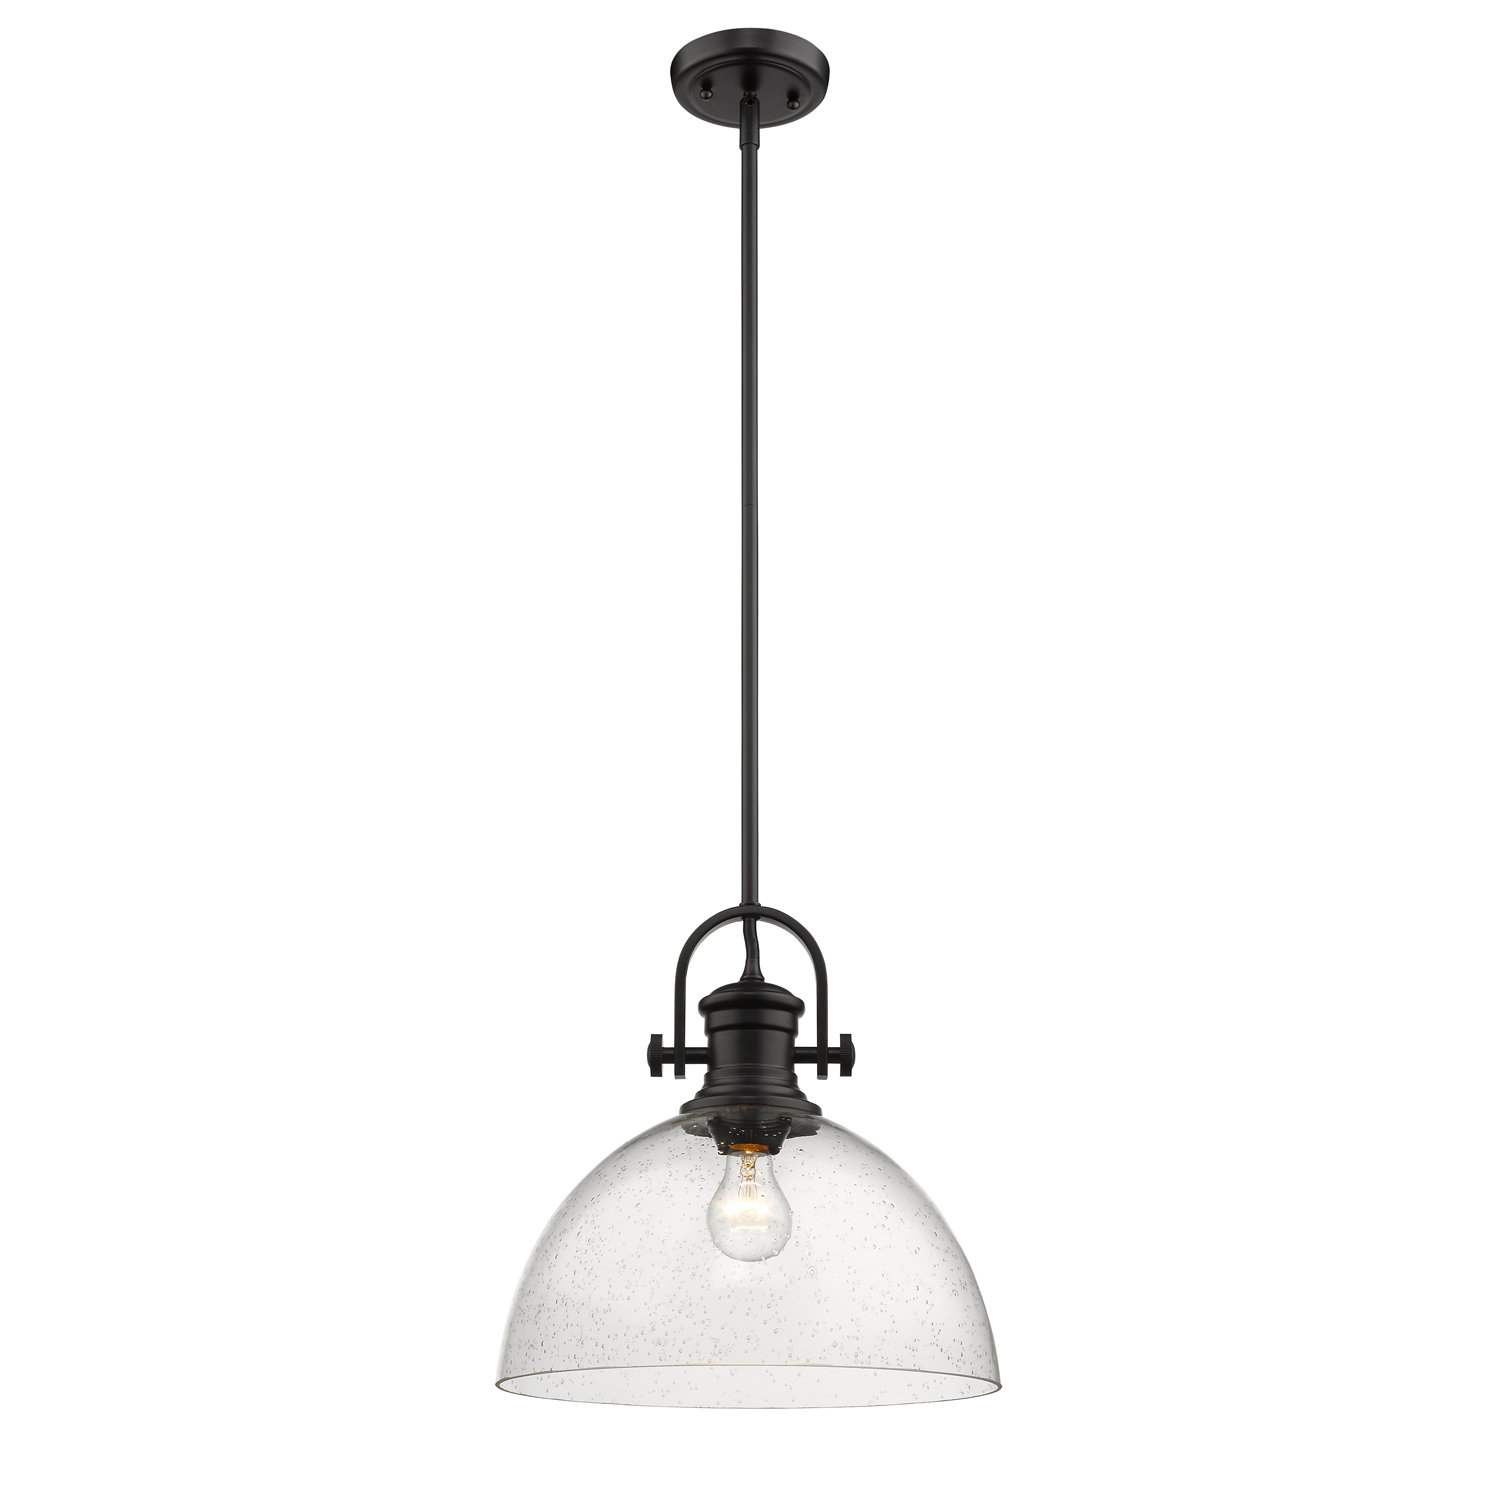 Vedder 1 Light Dome Pendant With Regard To Abernathy 1 Light Dome Pendants (Image 30 of 30)